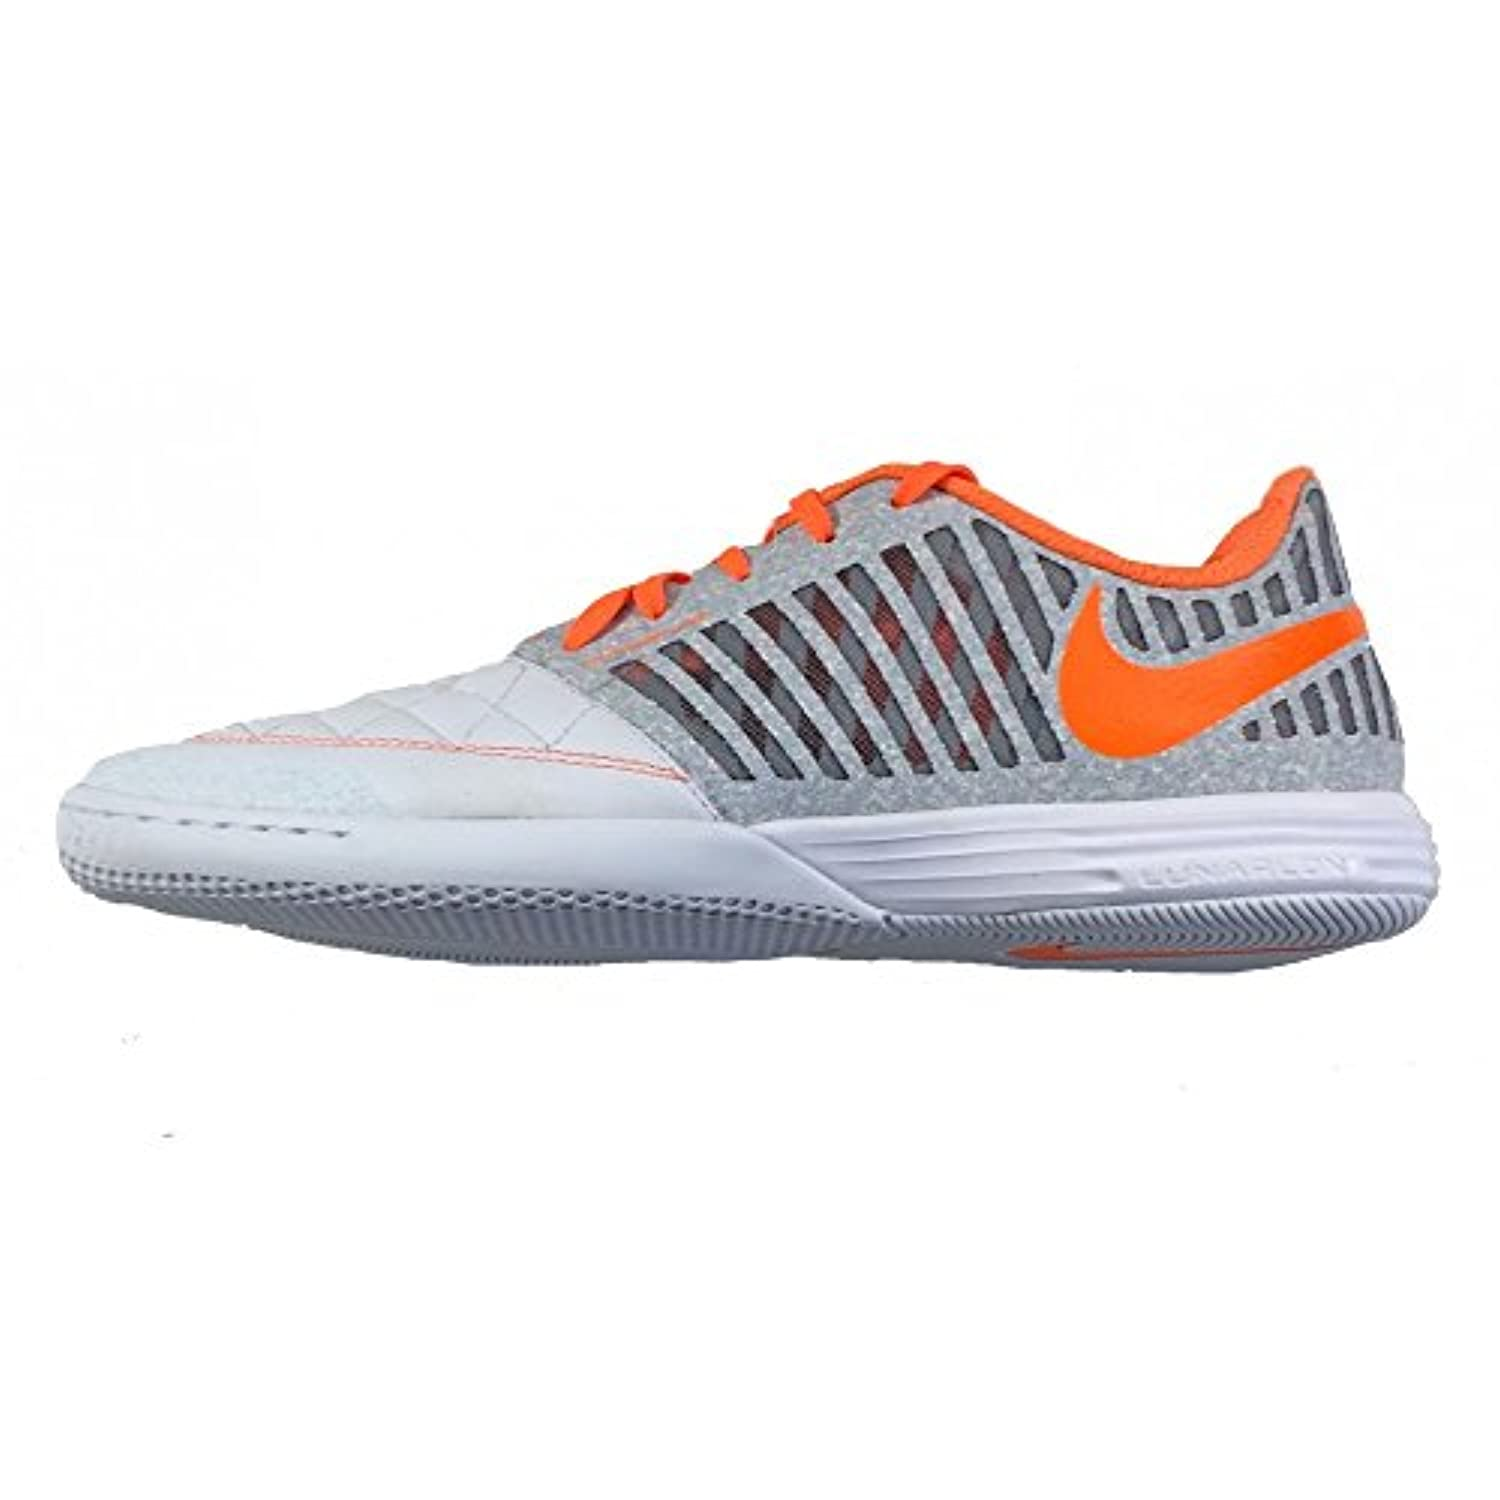 competitive price b2c70 42d63 cheap nike lunargato ii mens indoor soccer shoes blue 5b1e3 2cdaf  coupon  code for get nike lunargato ii indoor soccer shoes wolf grey total orange  sz.